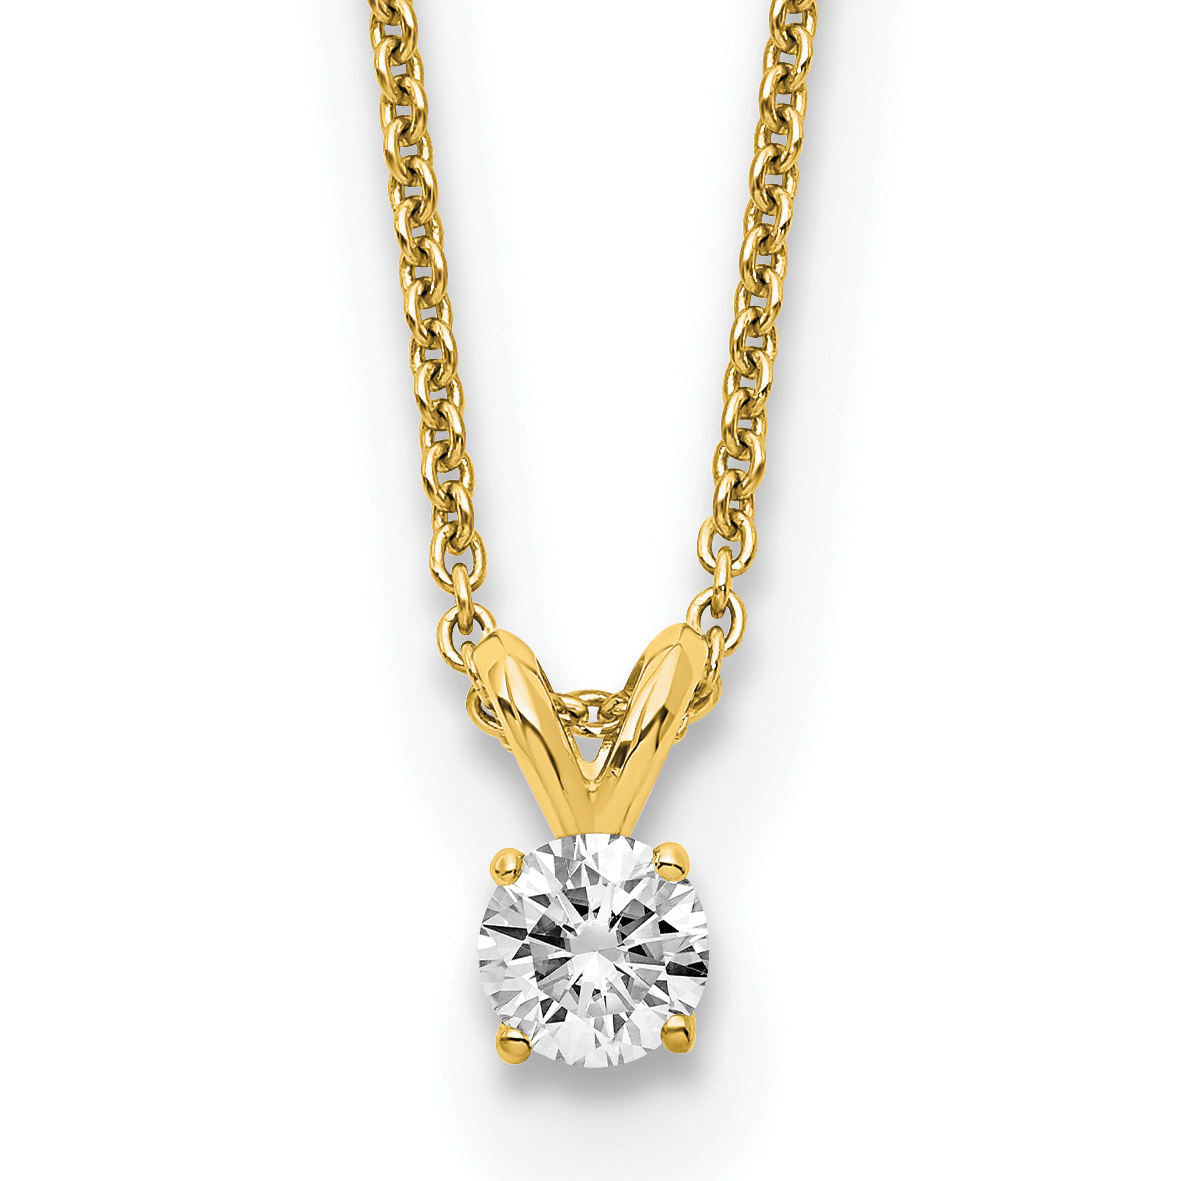 14ky 1/2ct. 5.0mm Round (J,K) Moissanite Solitaire Pendant on cable chain